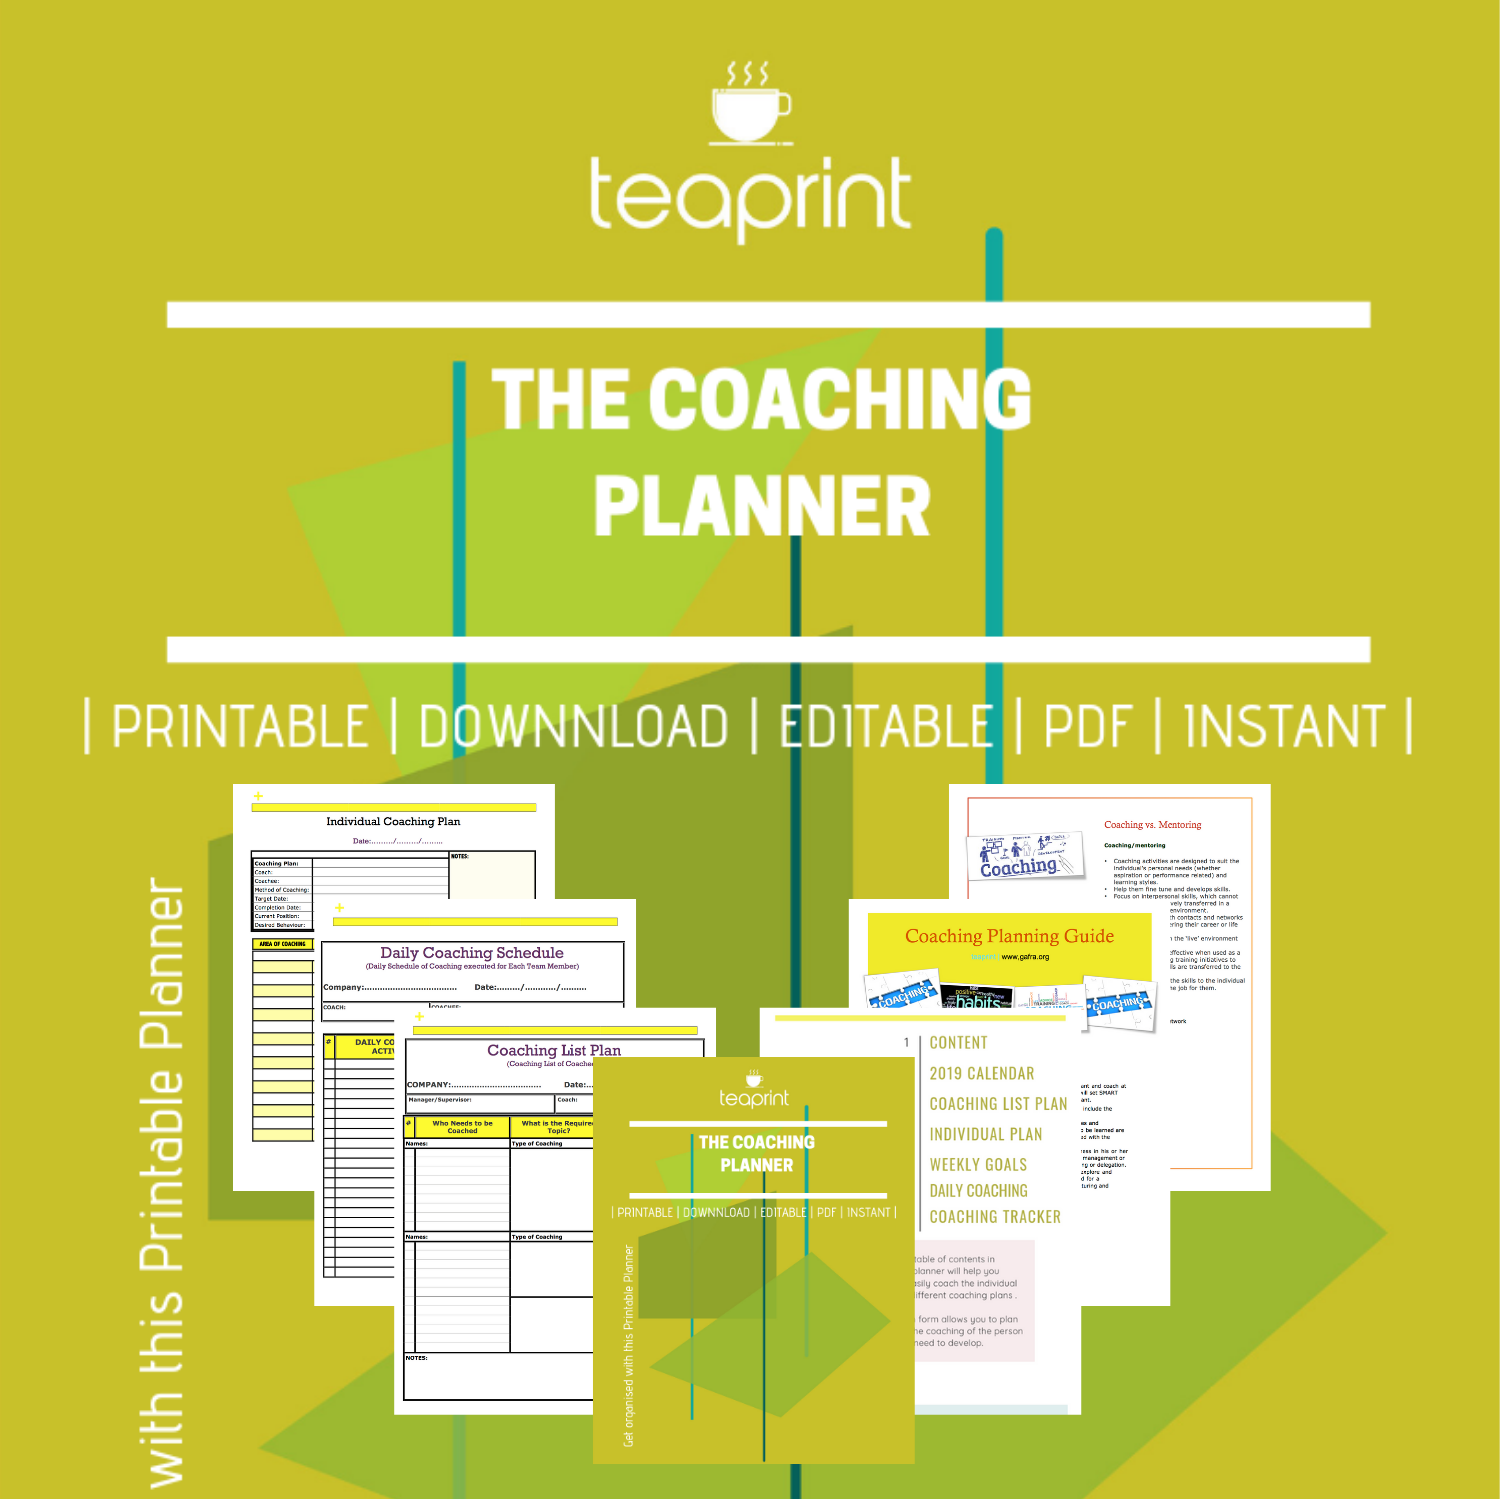 get printable coaching planner pages at gafra.org